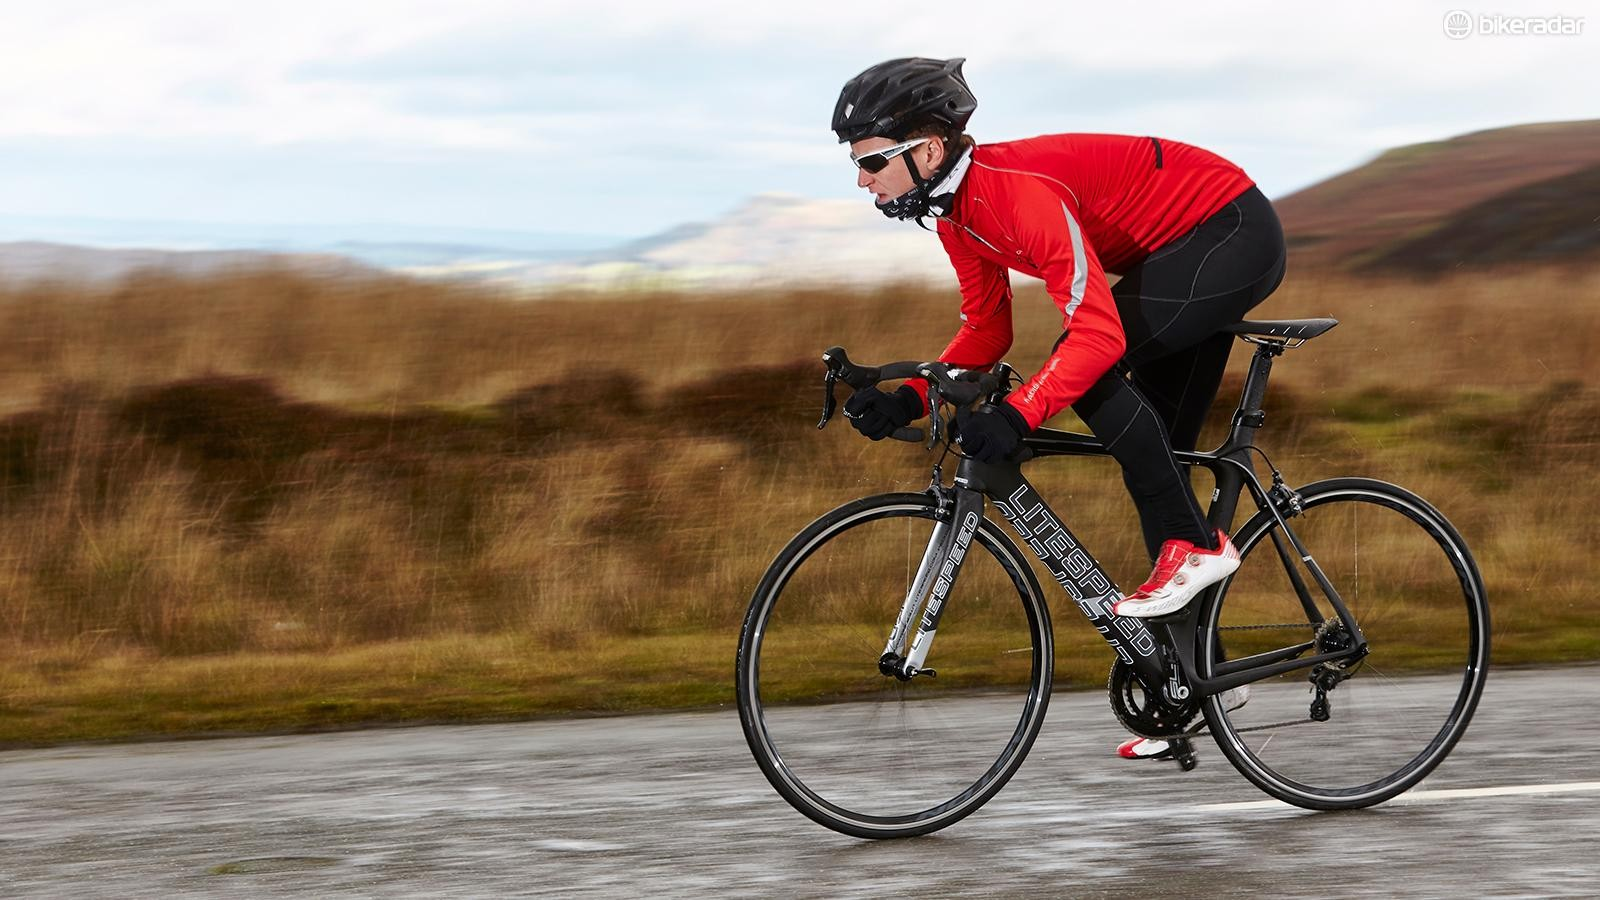 Litespeed's C1 is certainly not short of get up and go